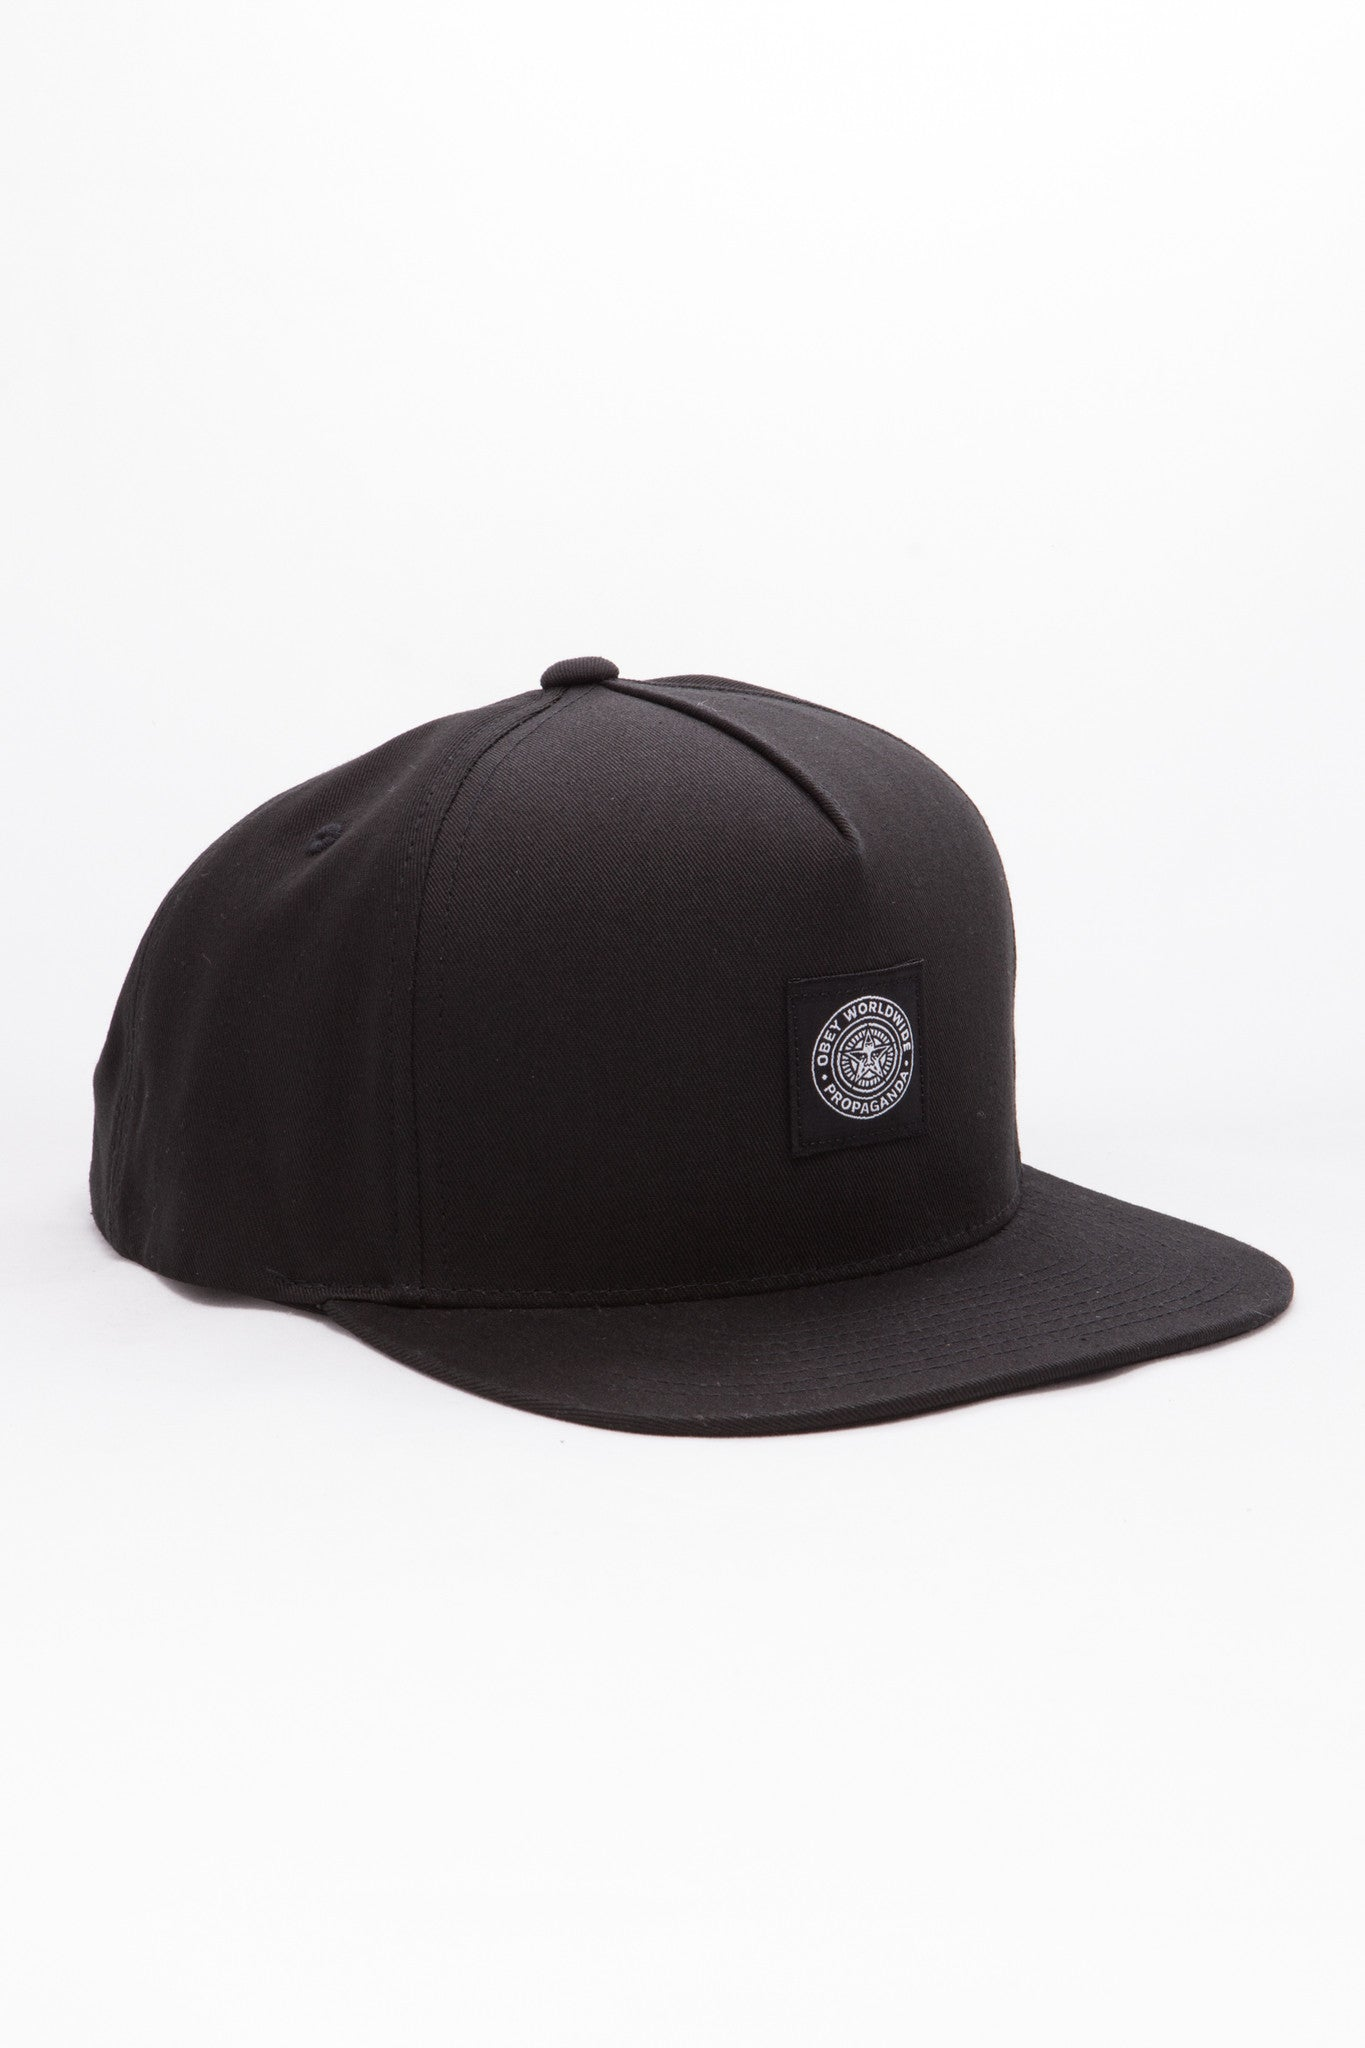 OBEY - Downtown Men's Snapback, Black - The Giant Peach